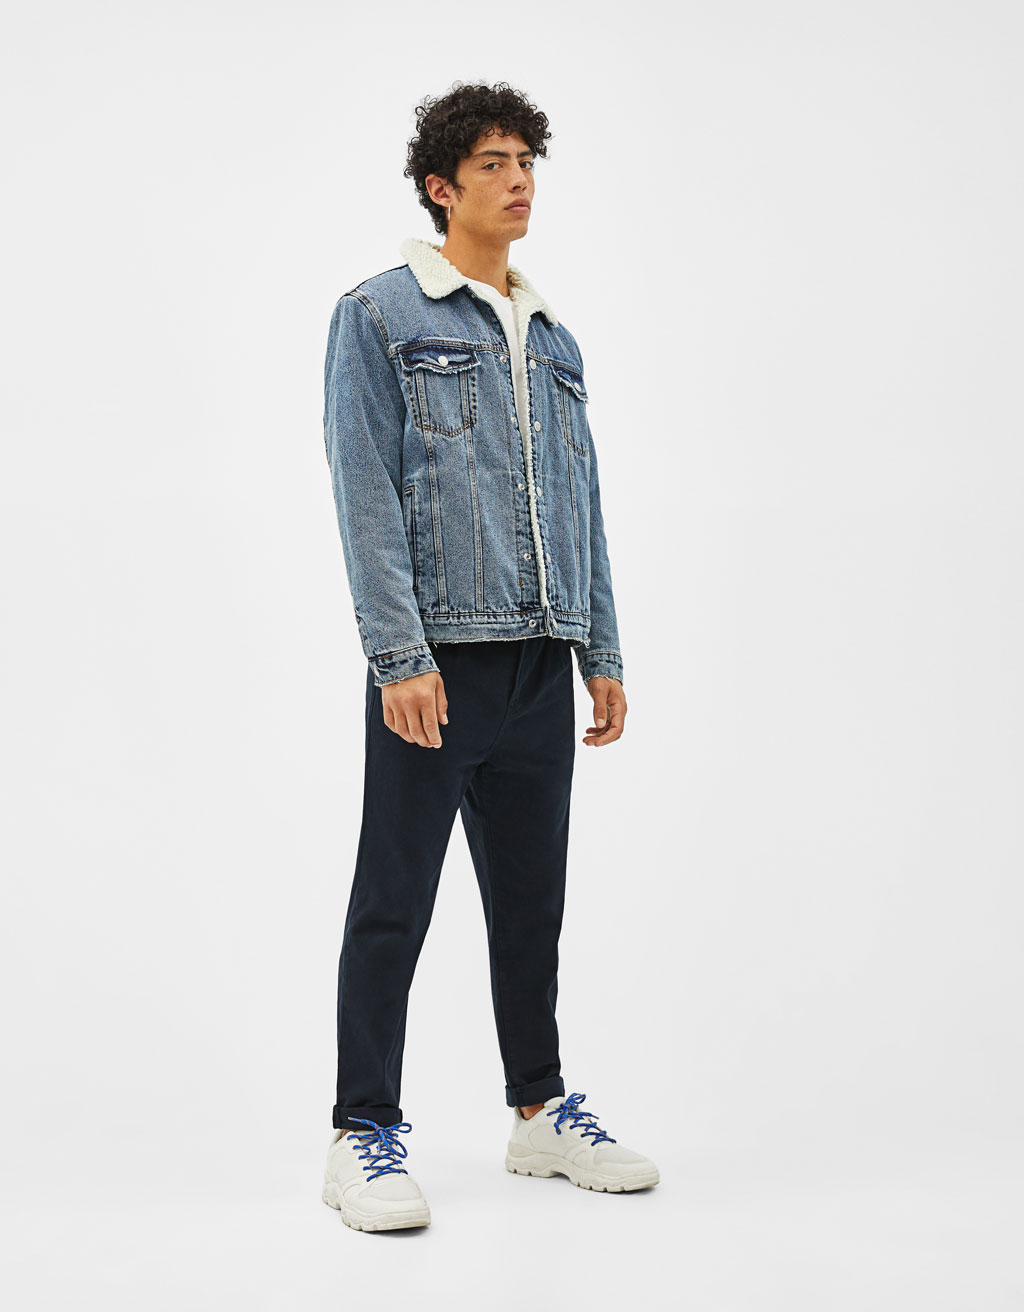 Loose fit chino jean